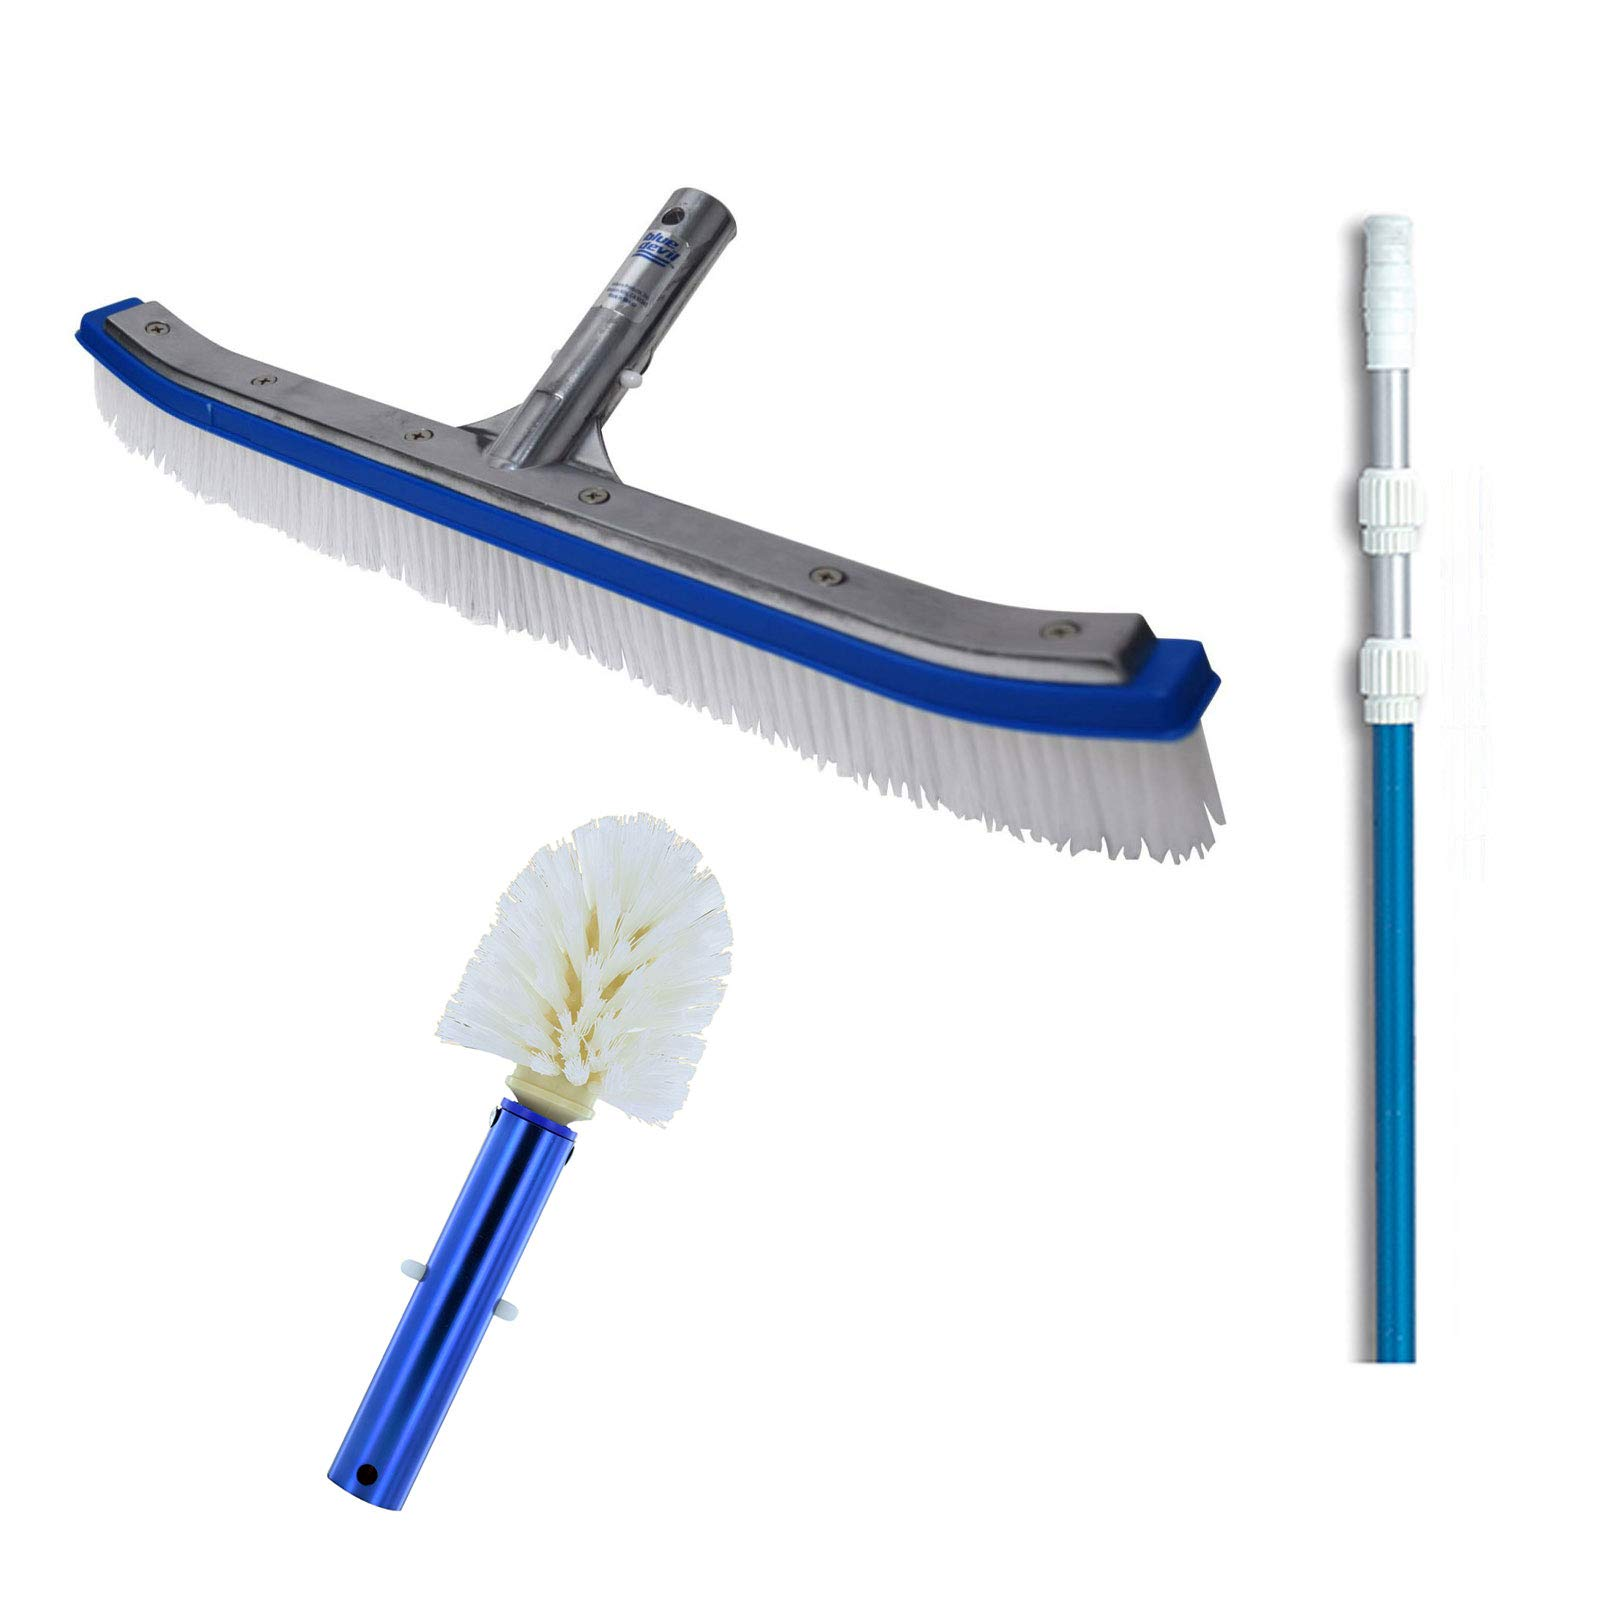 Blue Devil 18 Inch Pool Brush + 5 to 15 Foot Pole + Corner and Step Brush by Blue Devil